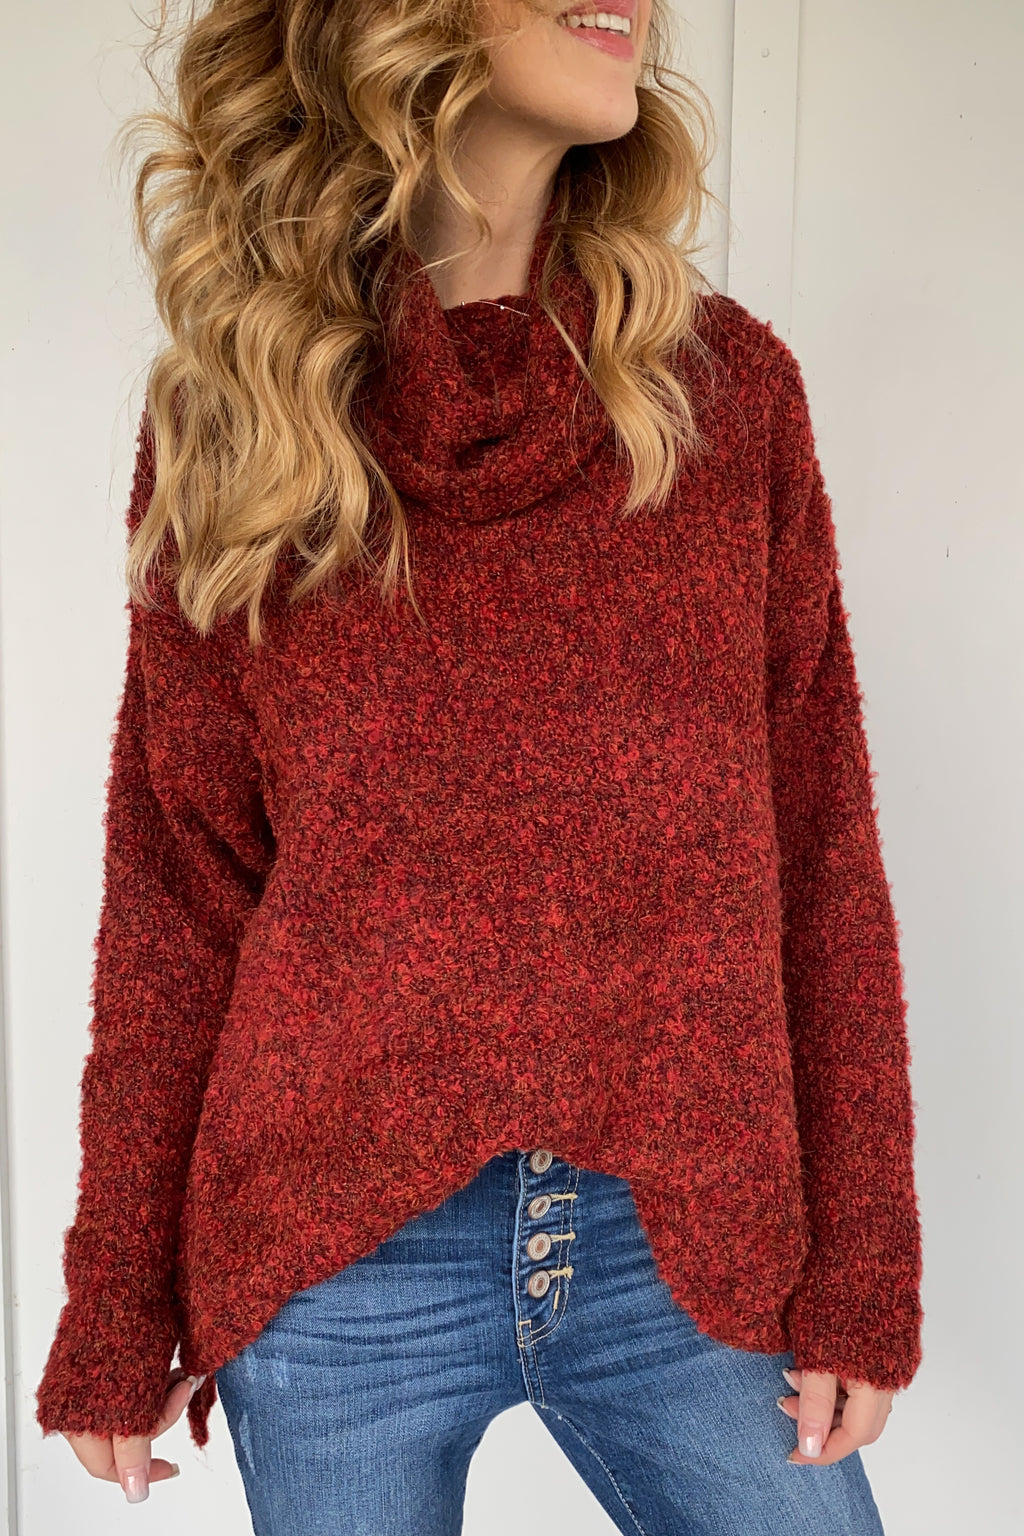 Troy Textured Cowl Neck Sweater in Tomato